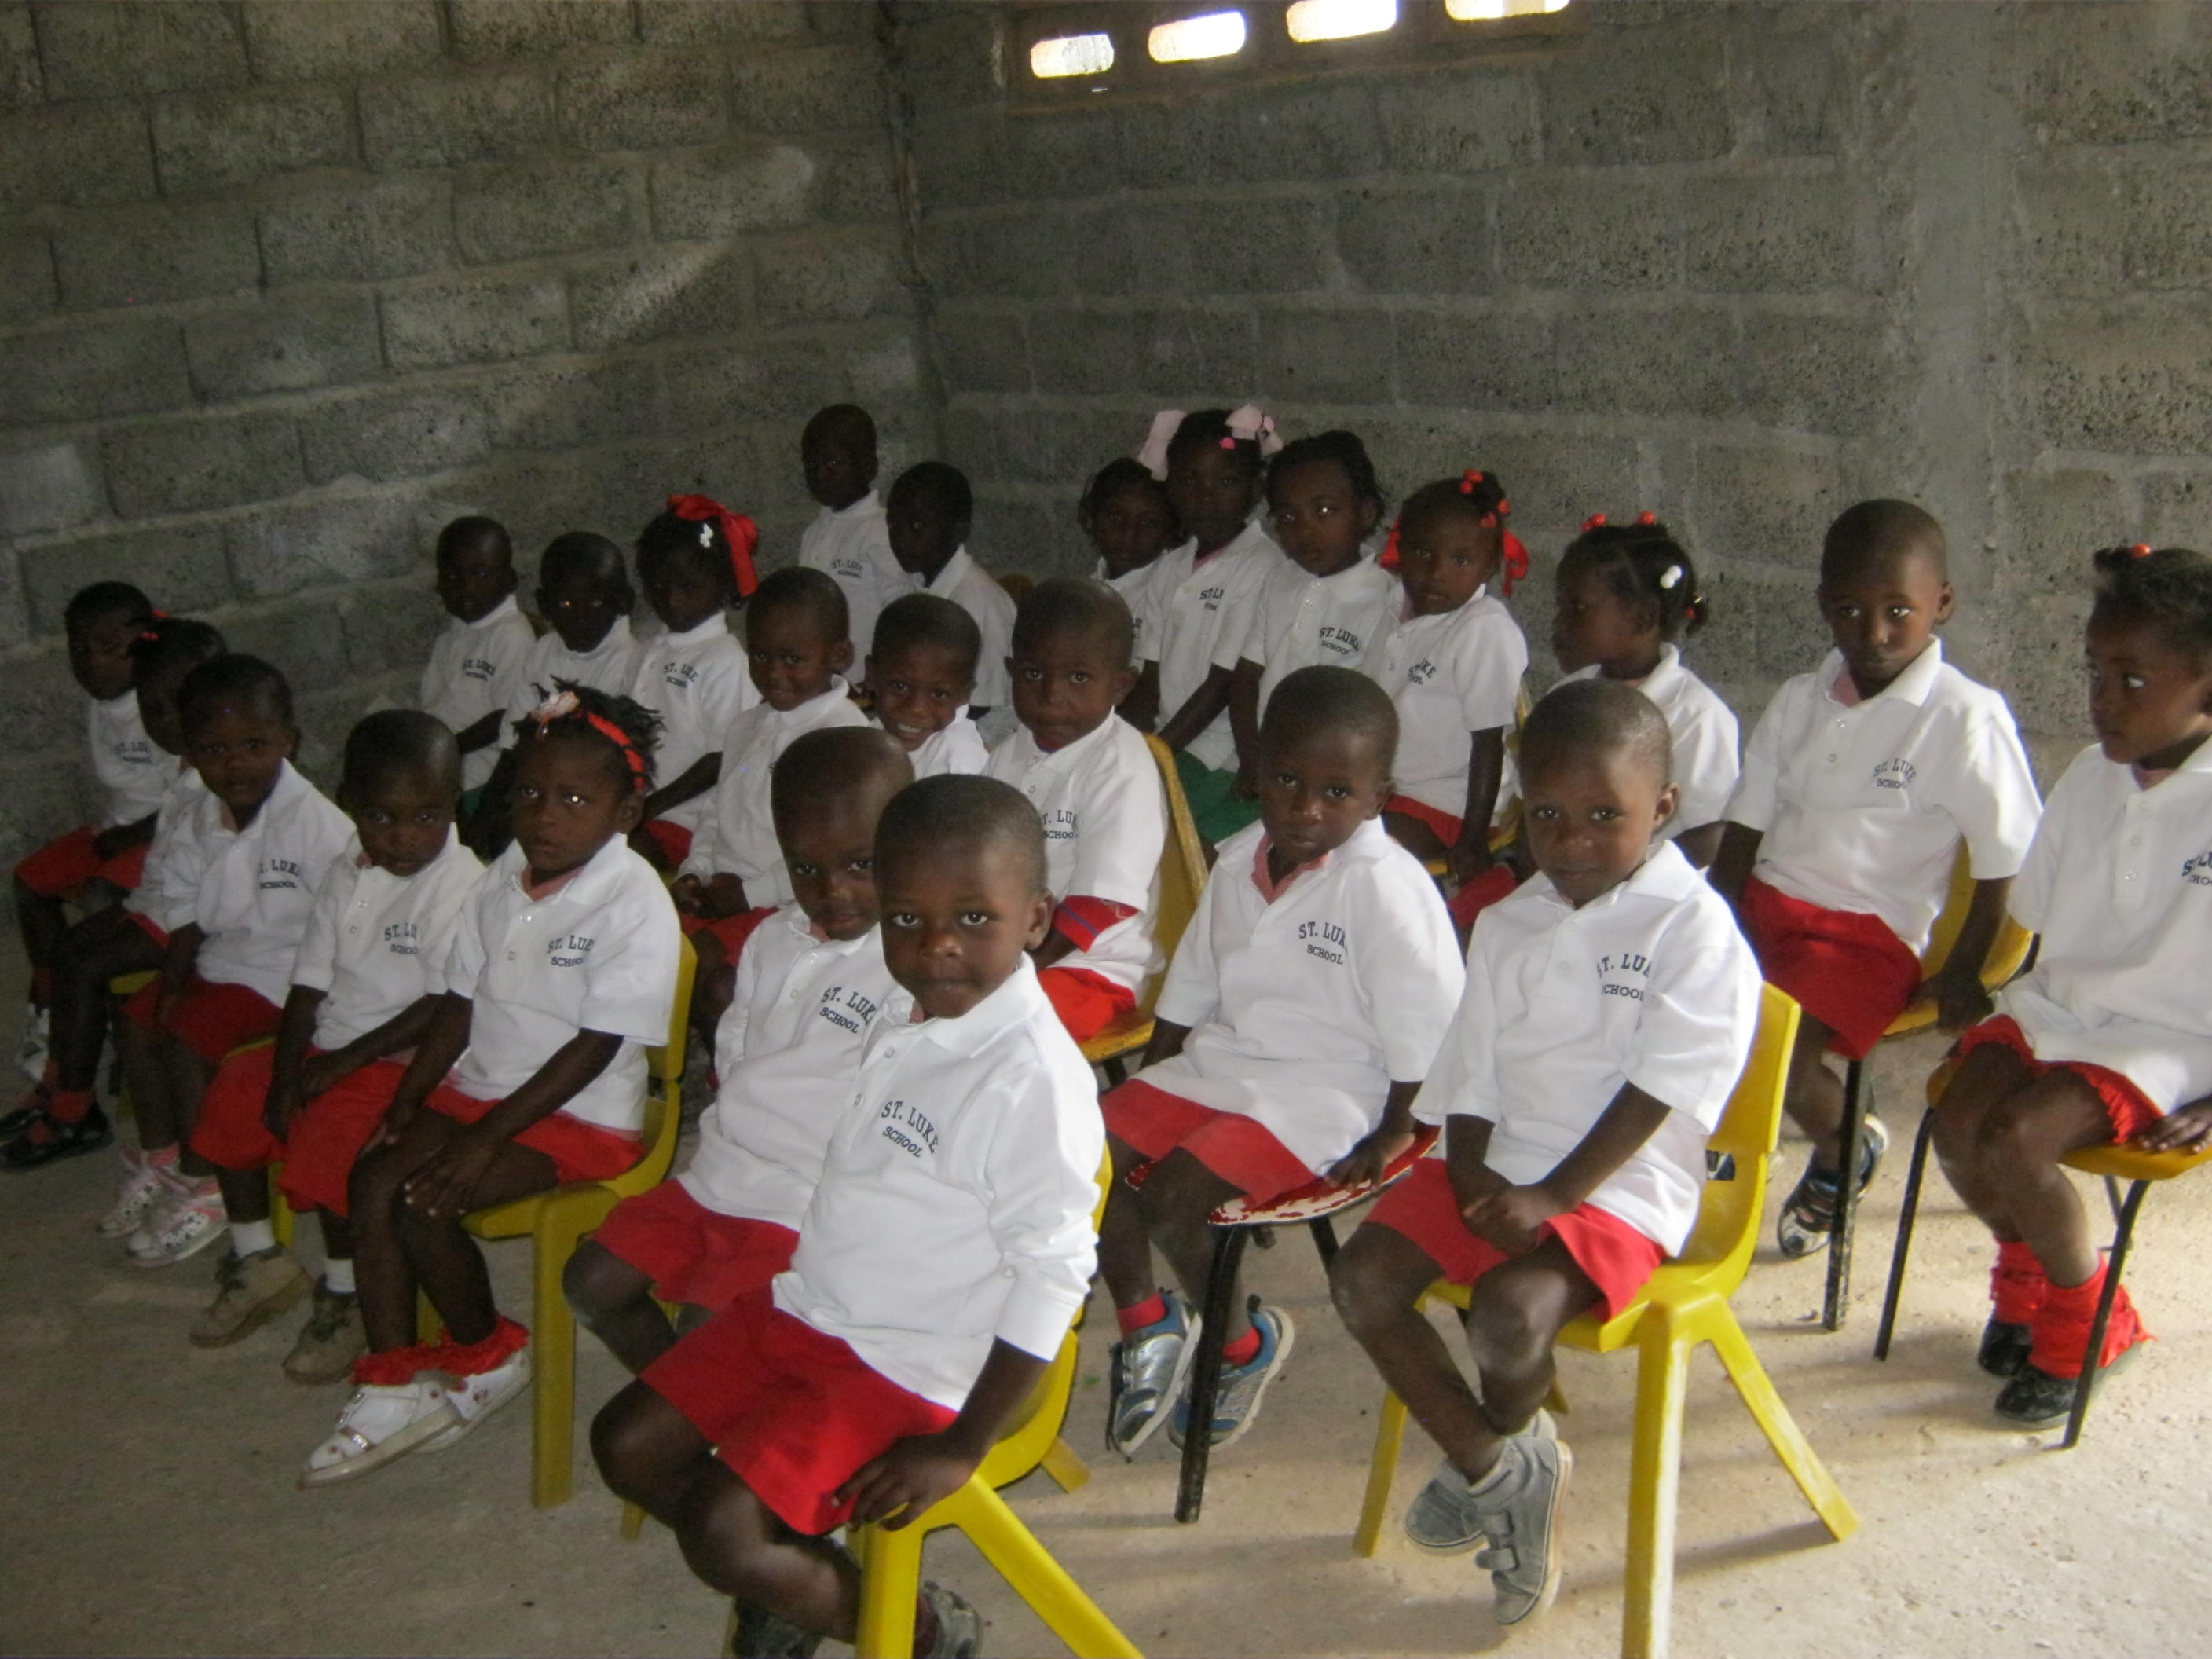 Young class in St. Luke uniforms